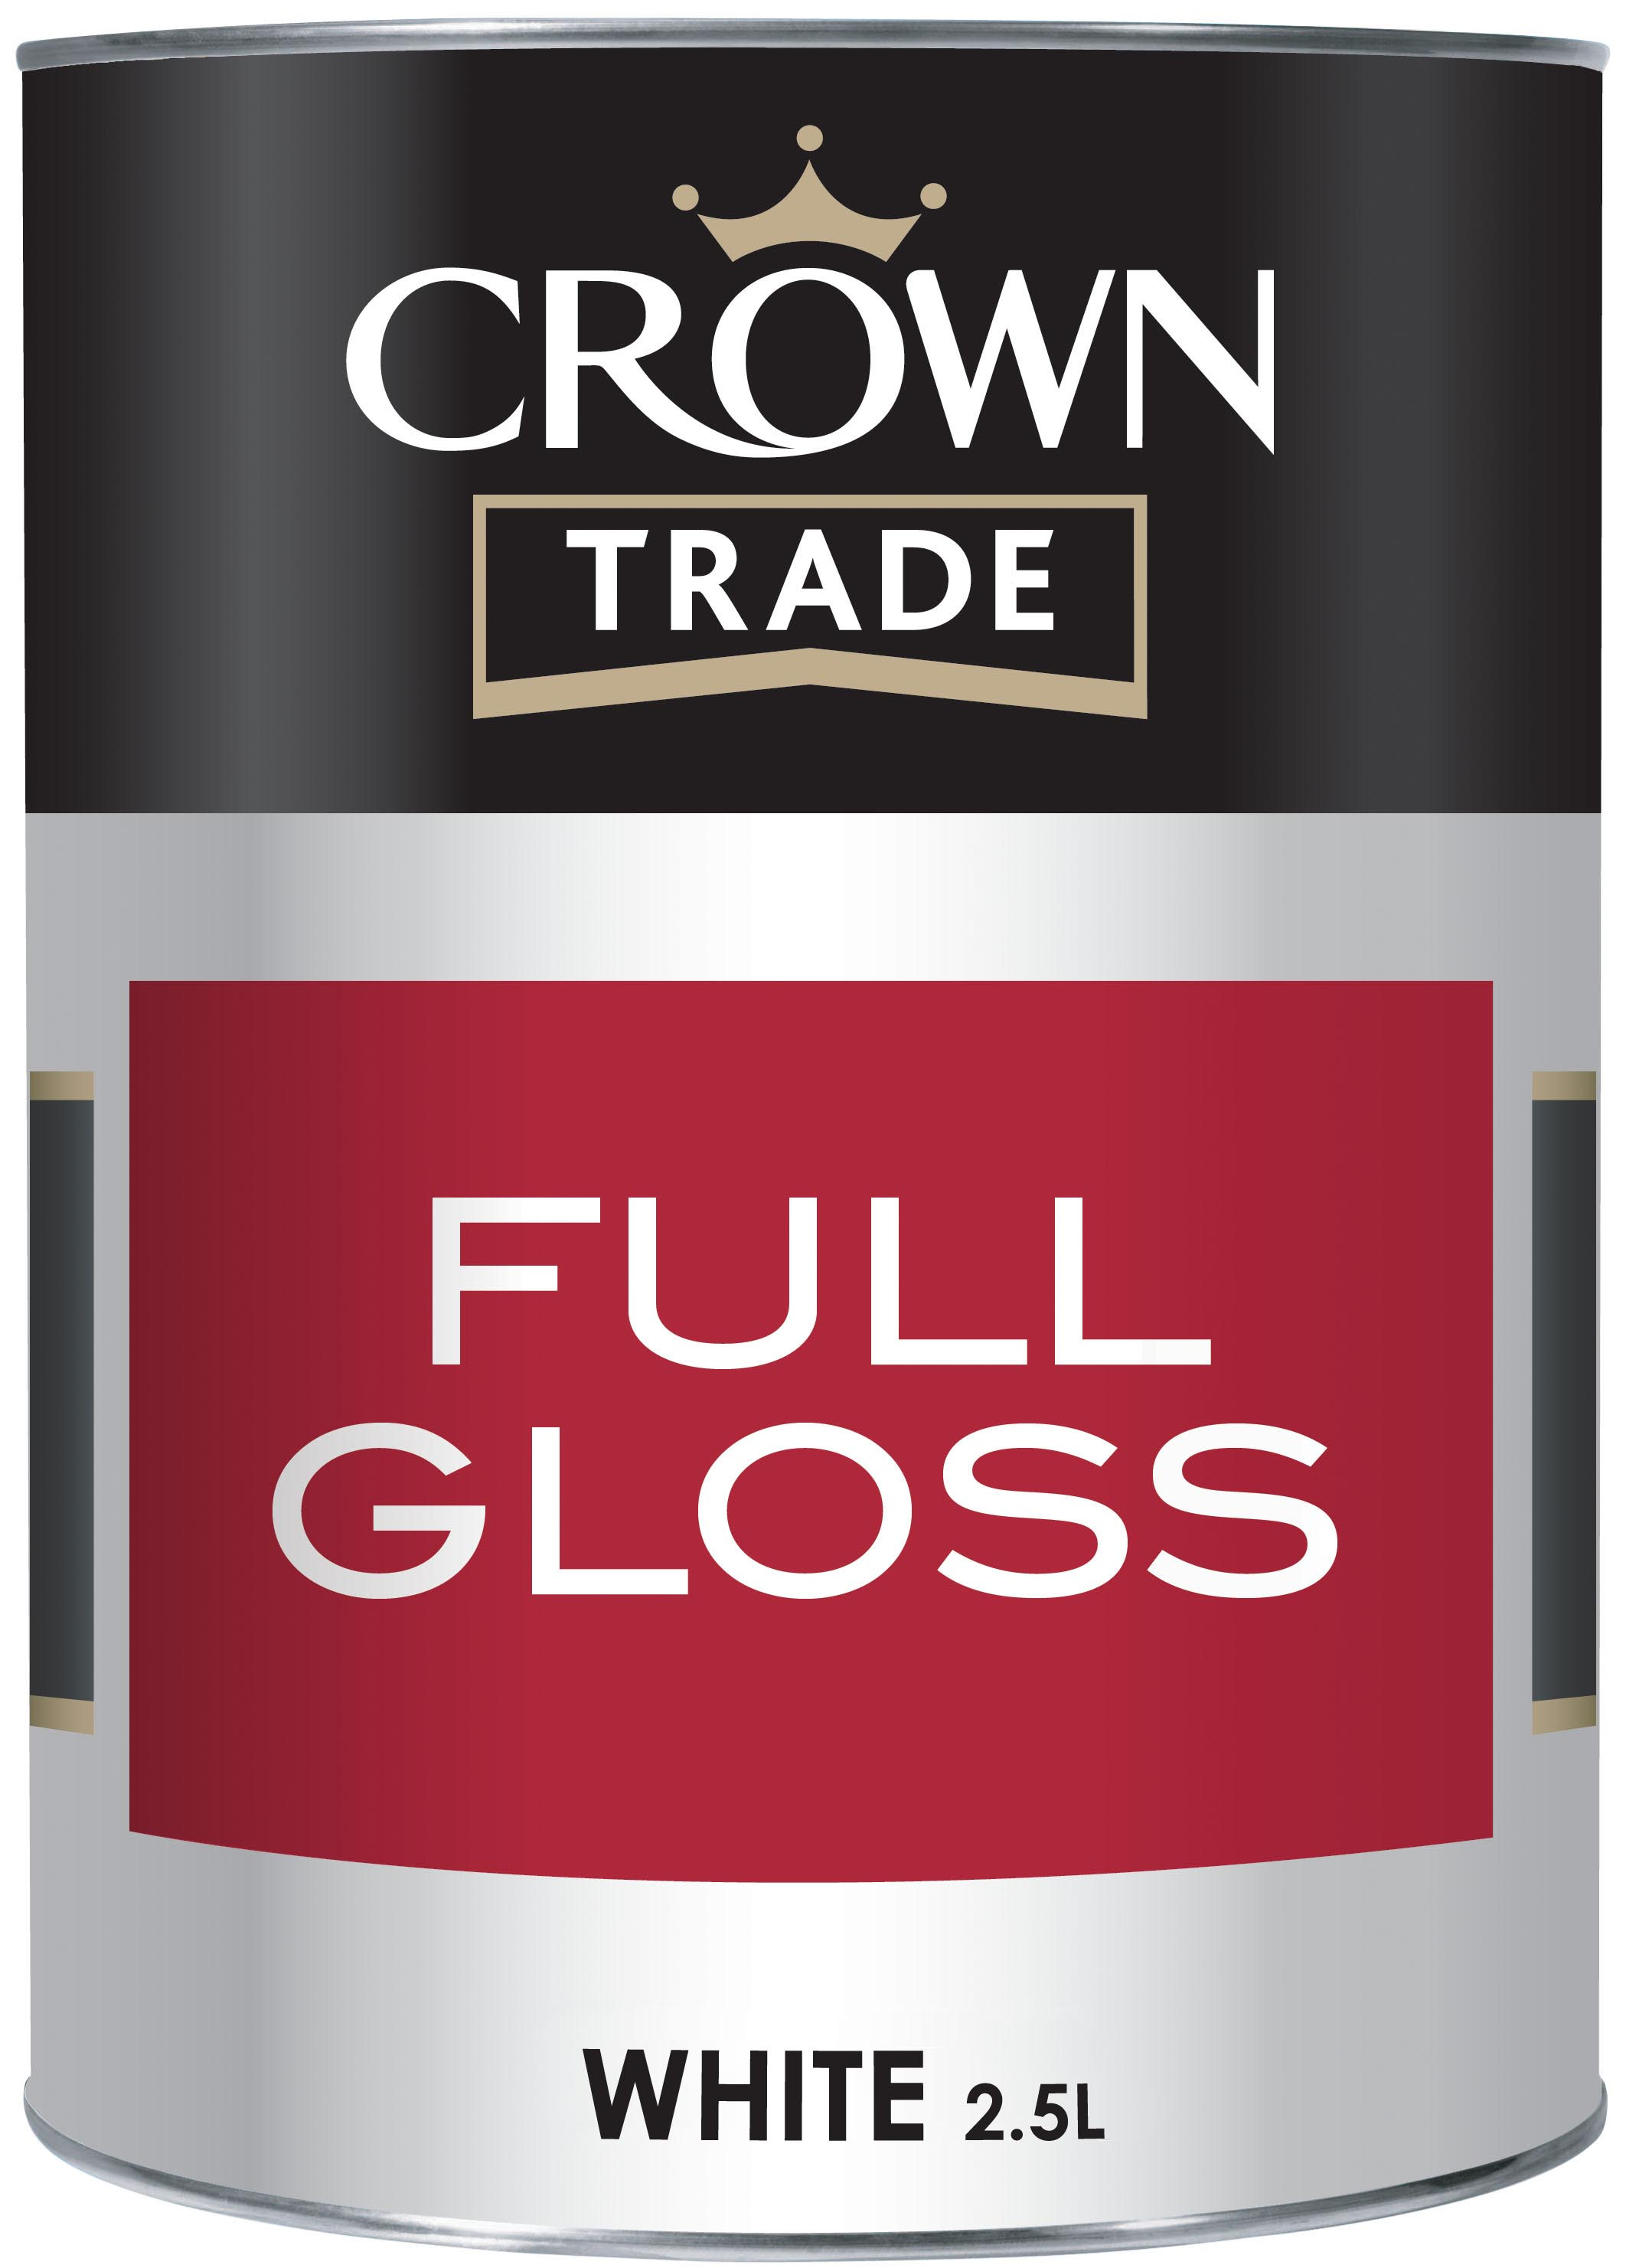 Crown Trade - Full Gloss - Brilliant White - 2.5L